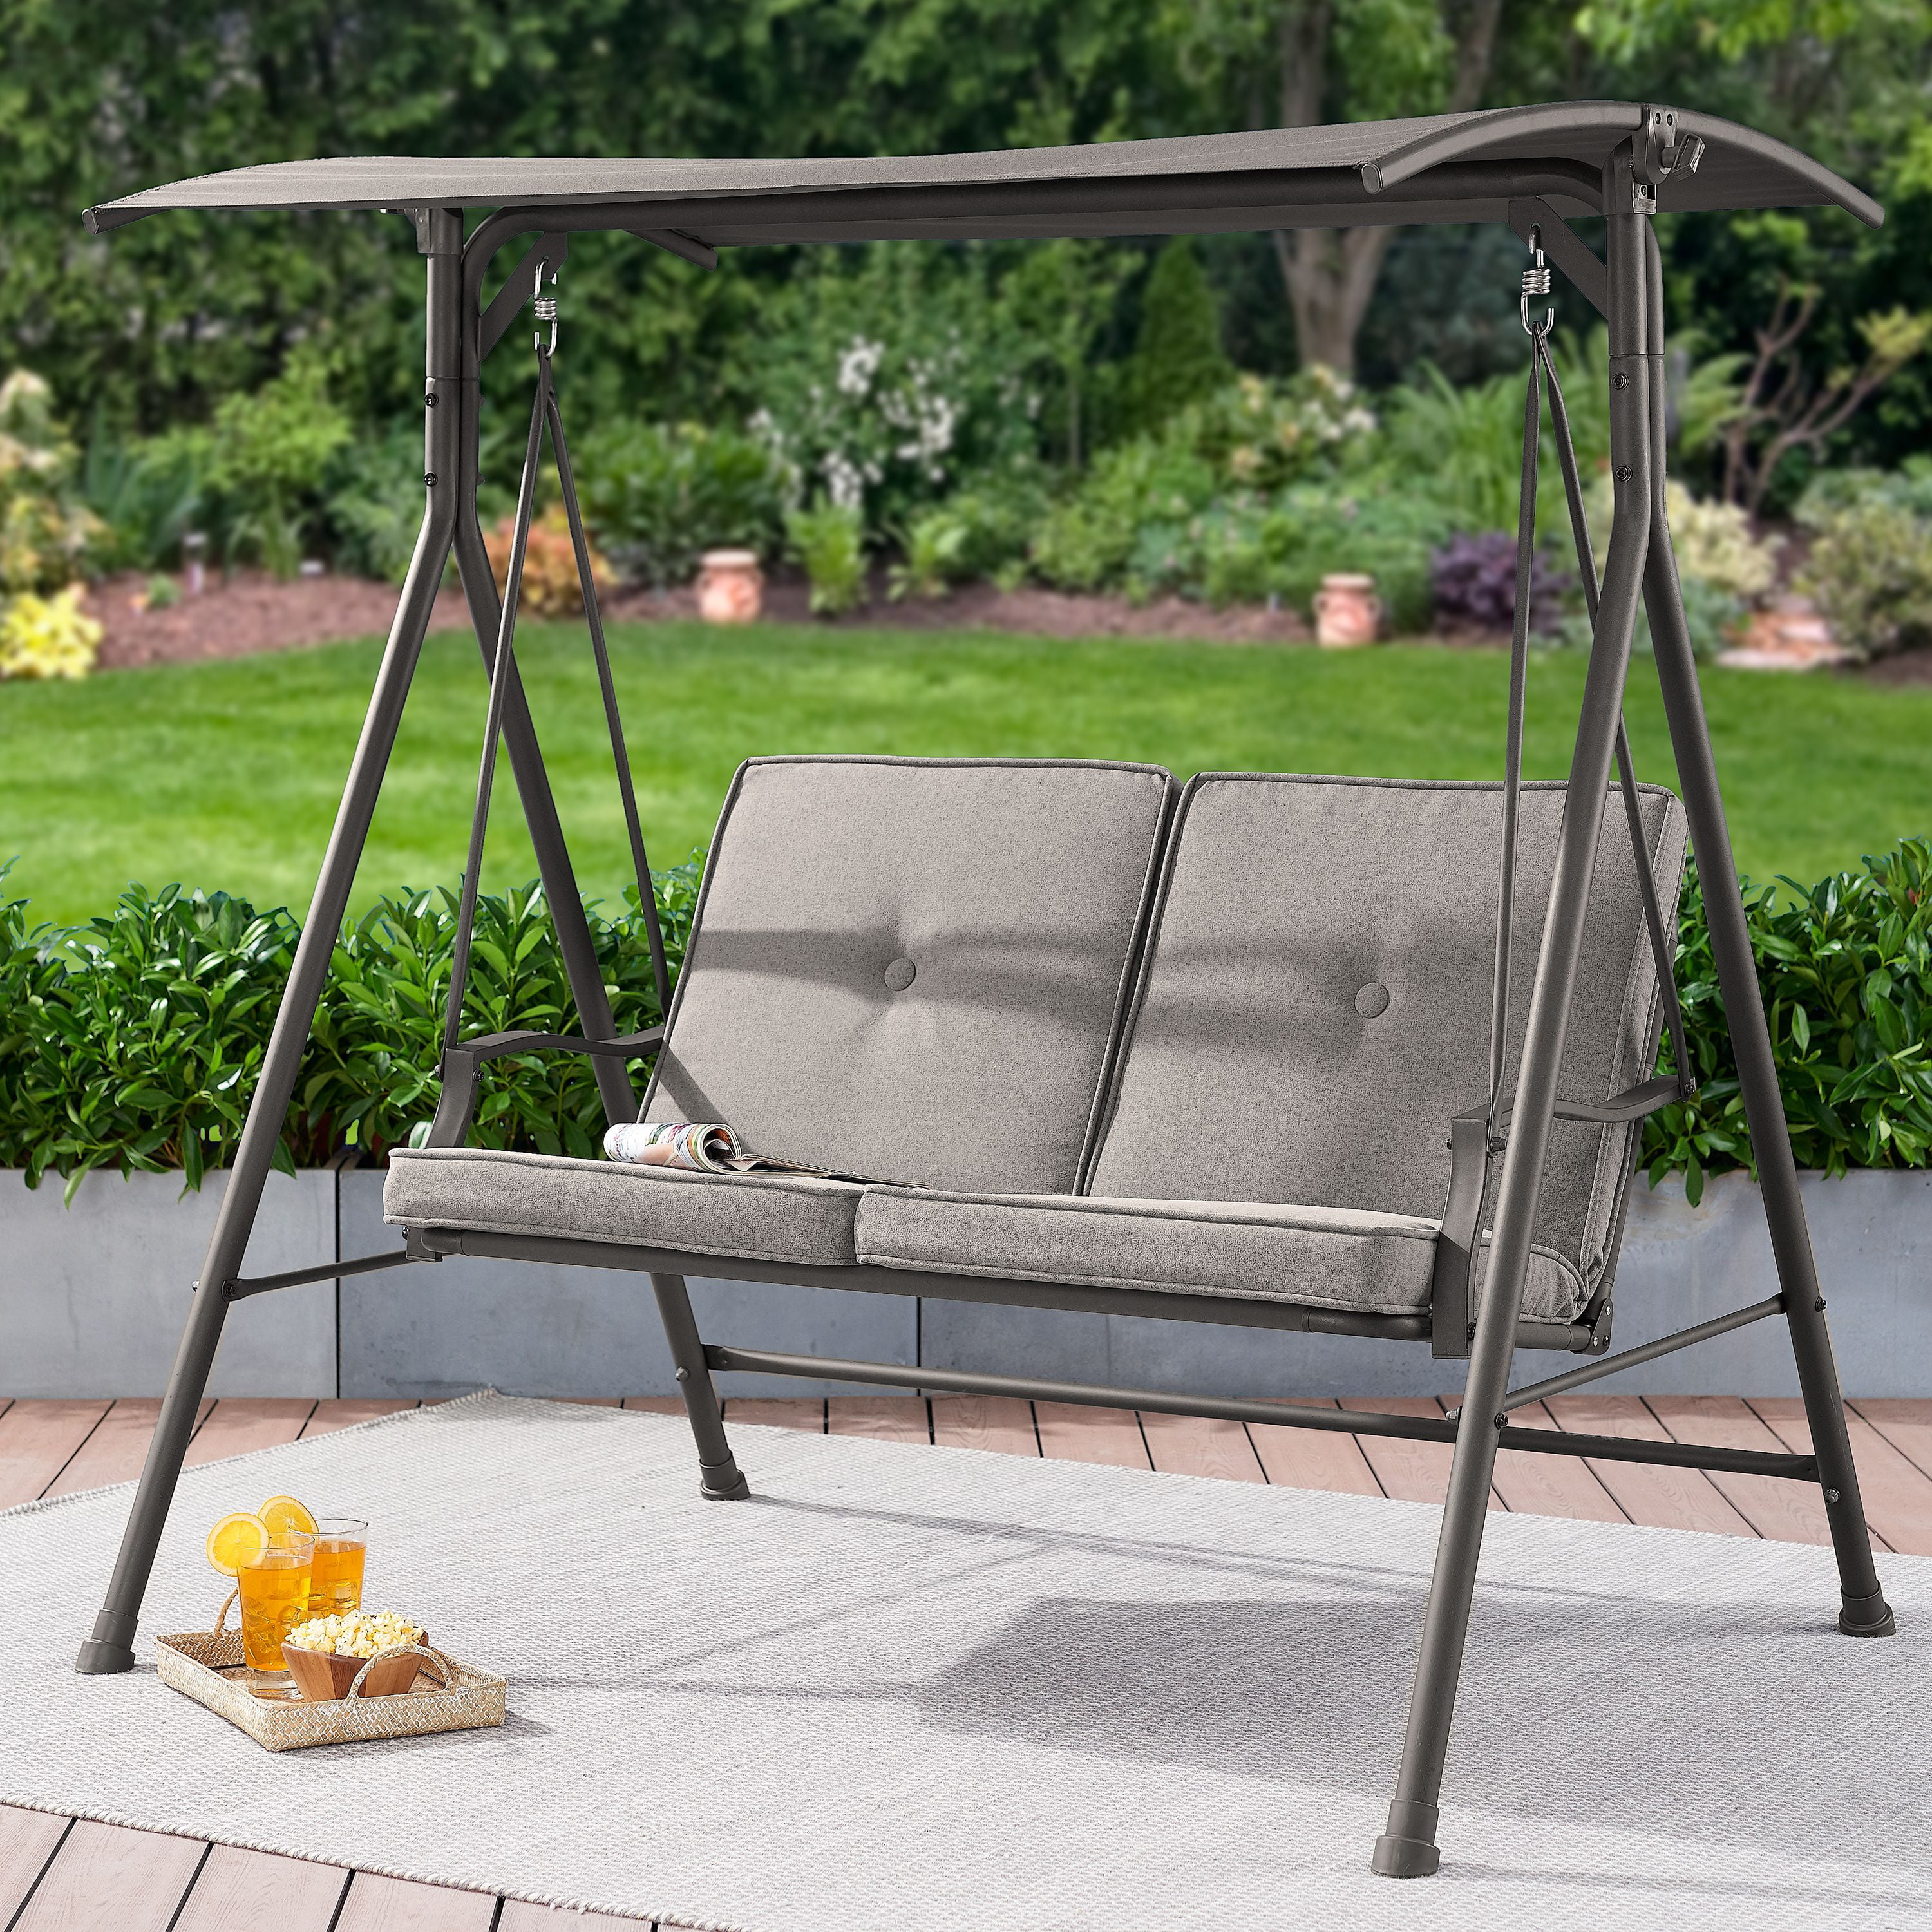 mainstays holten ridge two seat canopy patio swing with gray cushions walmart com